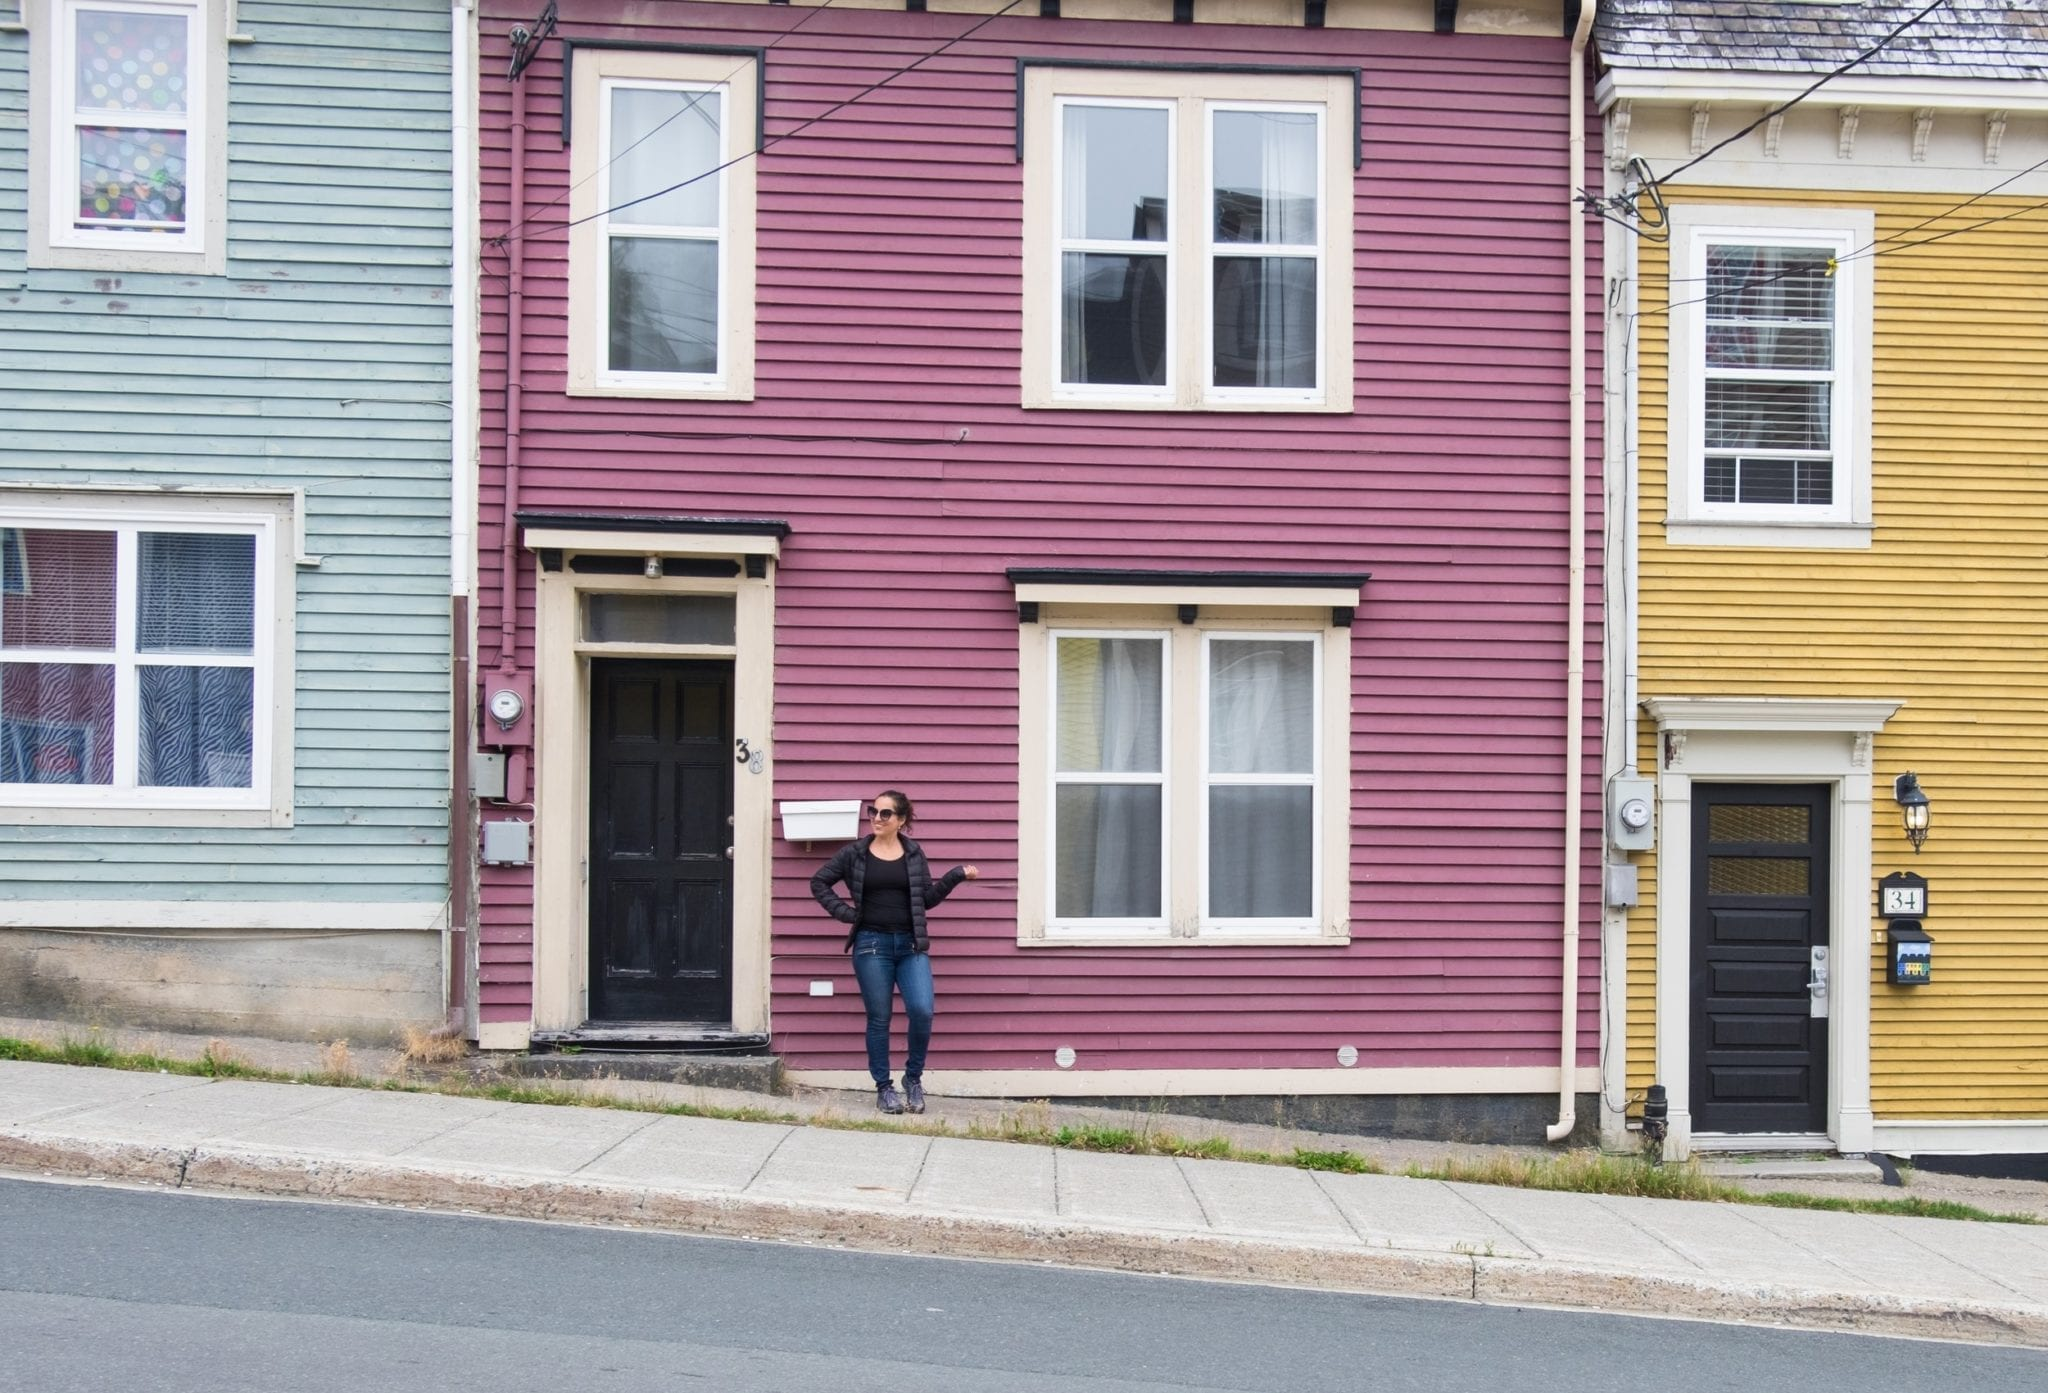 Kate stands in front of a mauve house with a pale blue house on the left and a mustard yellow house on the right.